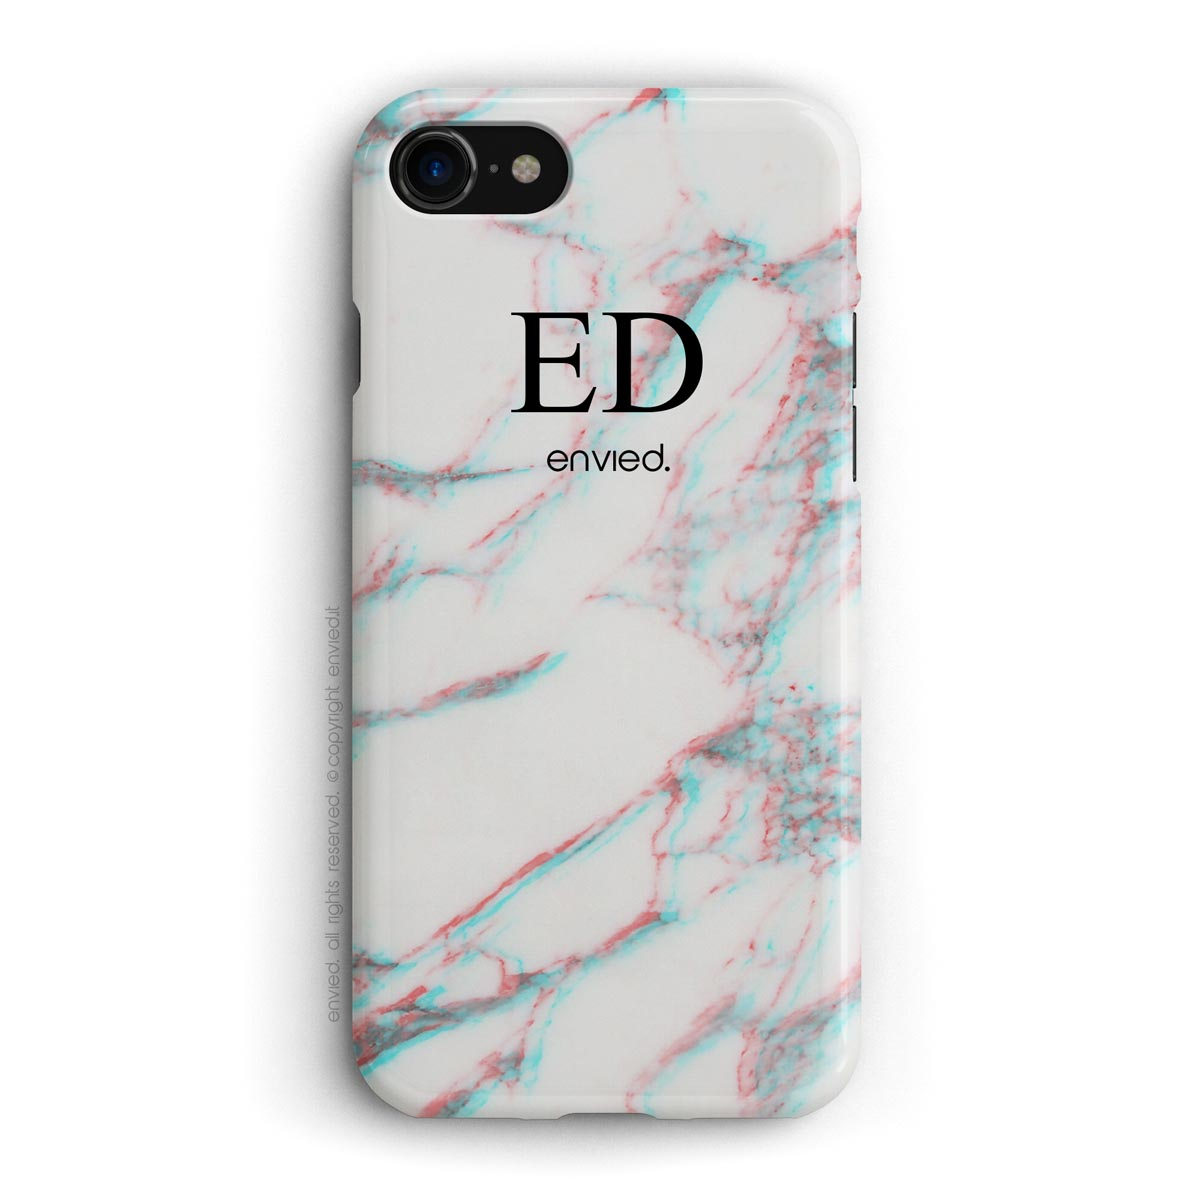 Envied 3d High Initials On White Marble